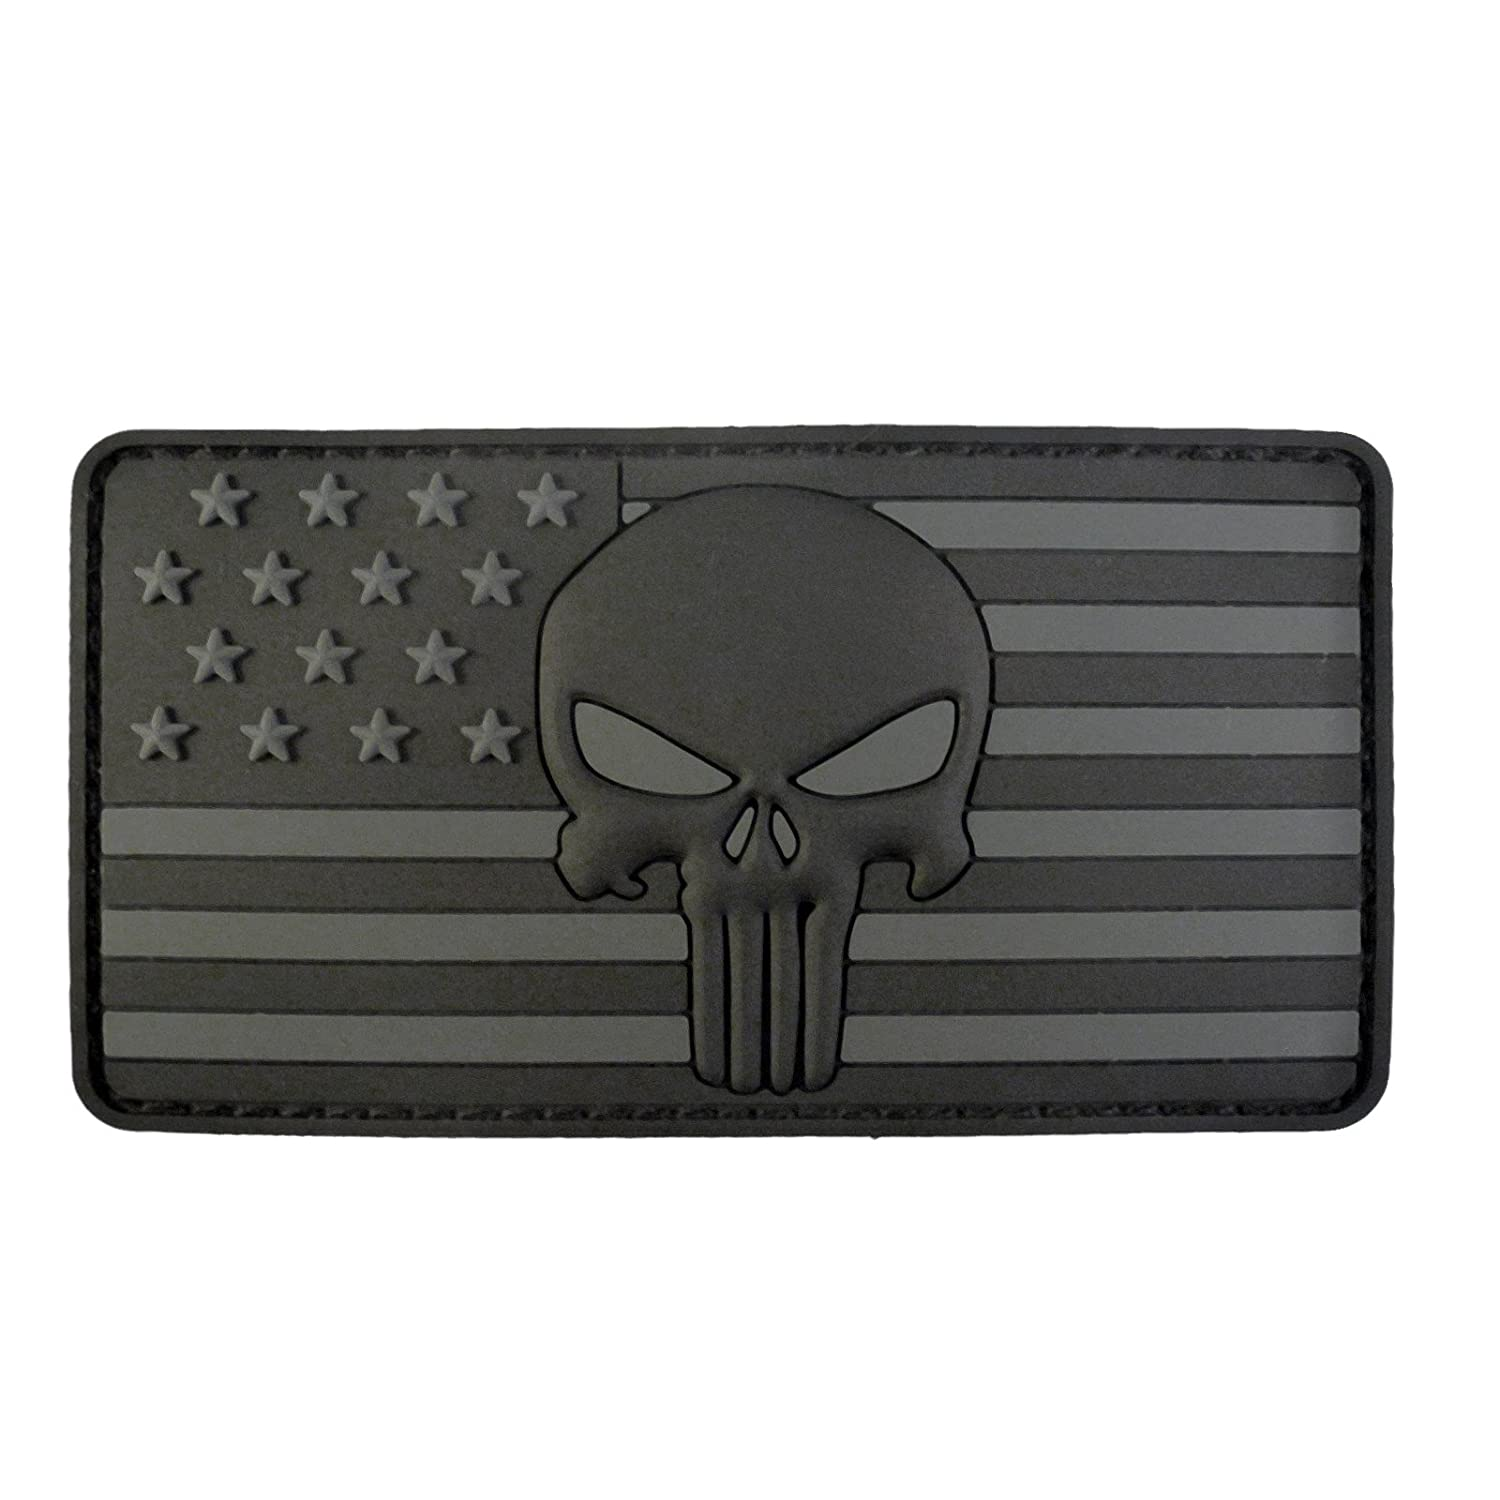 ALL BLACK Punisher American Flag Morale Tactical PVC Rubber Touch Fastener Patch 2AFTER1 P.1701.6.V